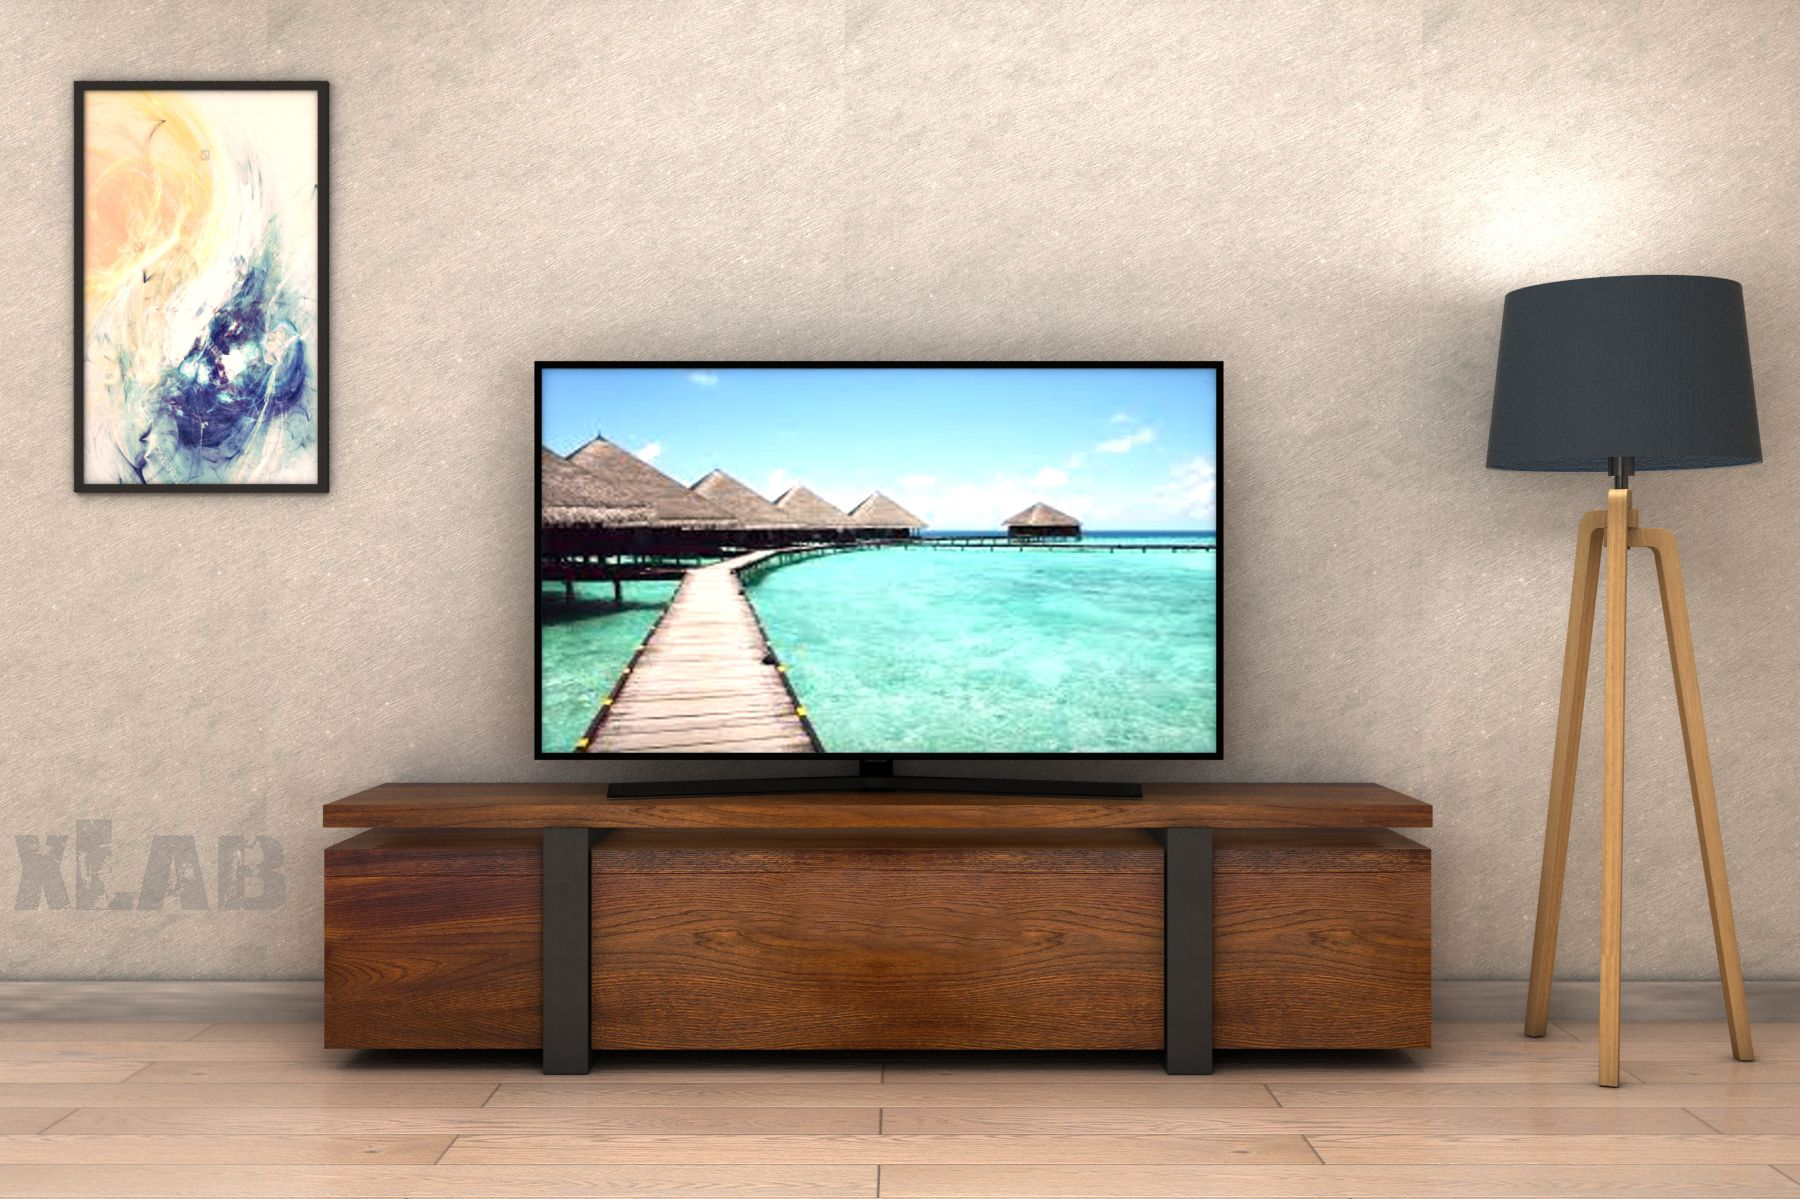 Mobile Tv In Legno.Mobile Tv In Legno Di Noce Mobiletv Portatv Home Design